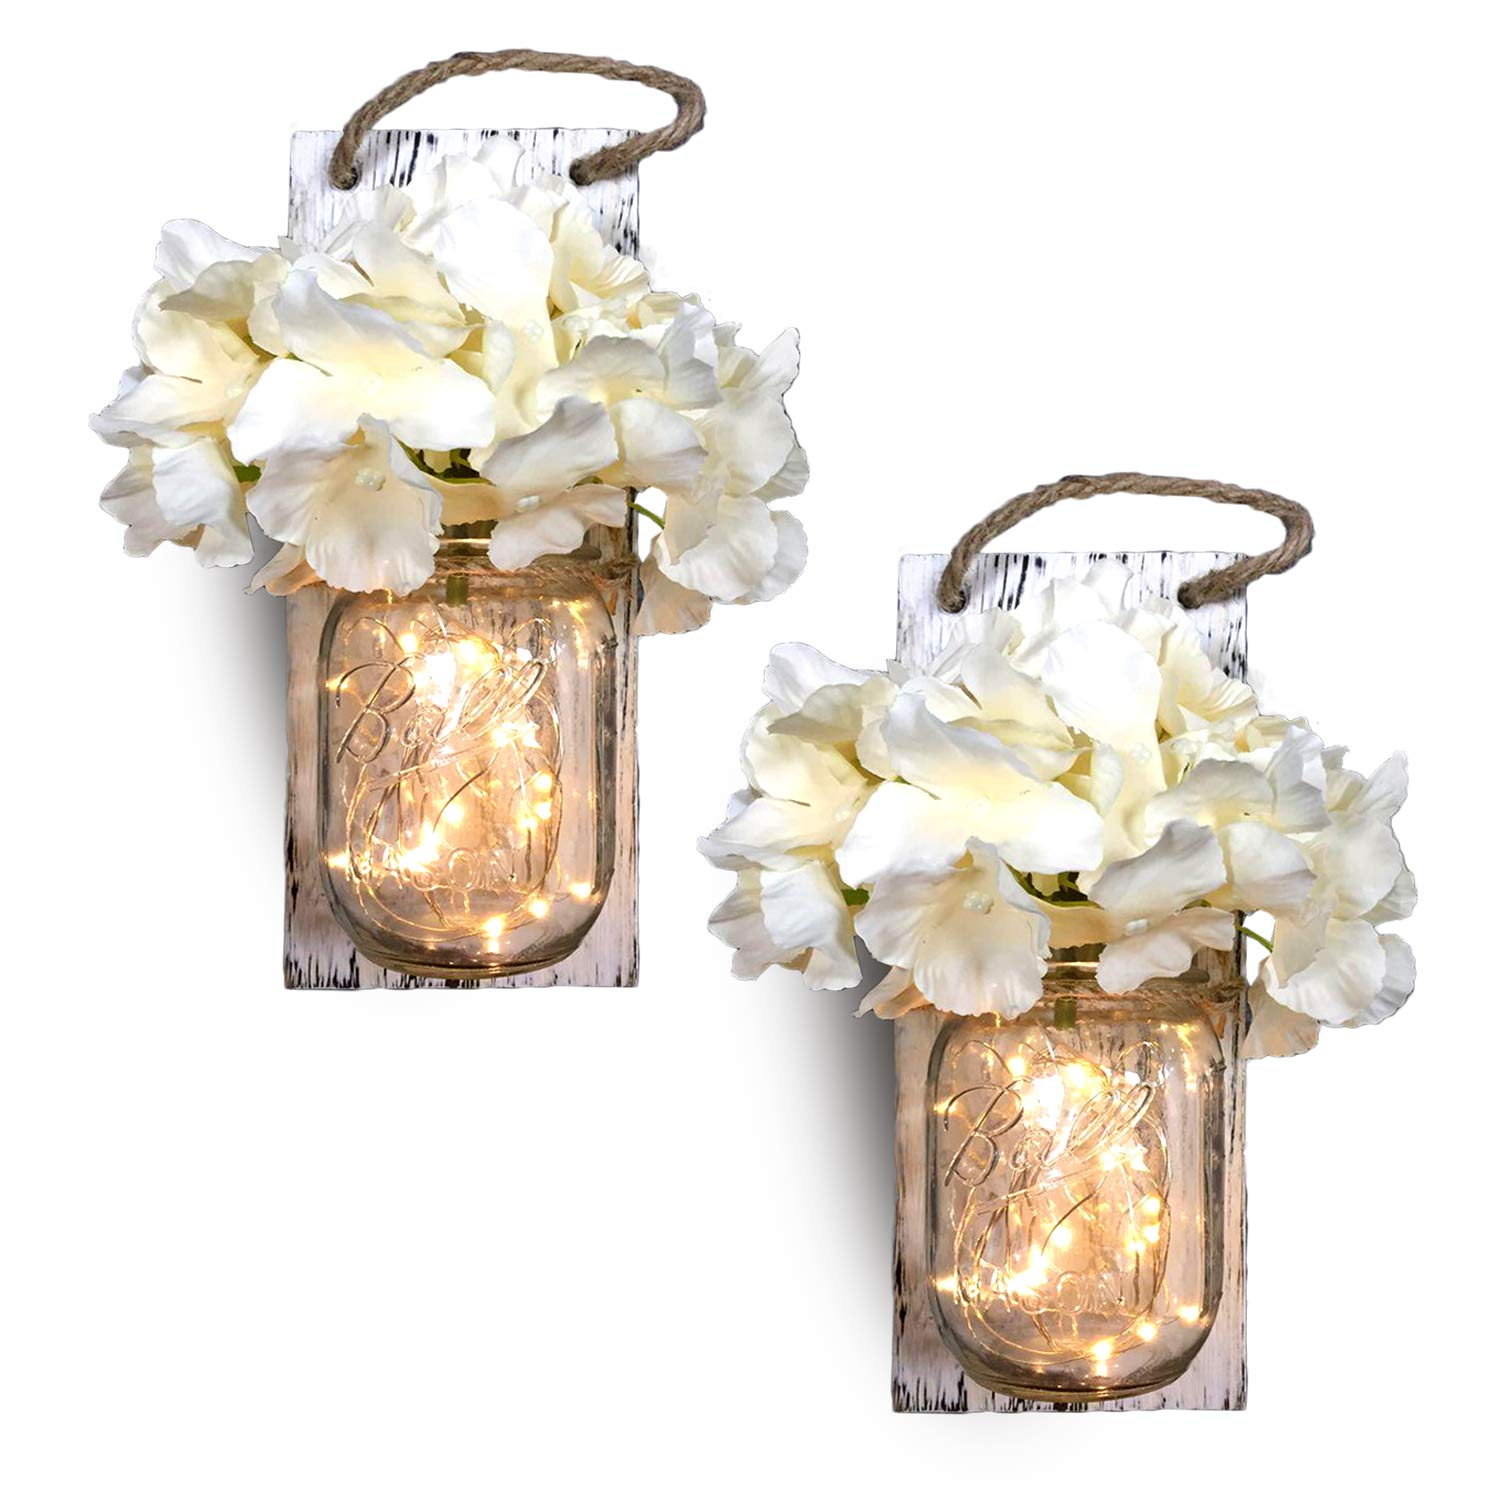 Mason Jar Sconces Wall Decor, Home Wall Decor for Living Room, Country Kitchen Decorations, Bathroom Wall Decor, Rustic Wall Sconce with LED Strip Lights and Hydrangea Flowers (Set of 2) Vintage Decor